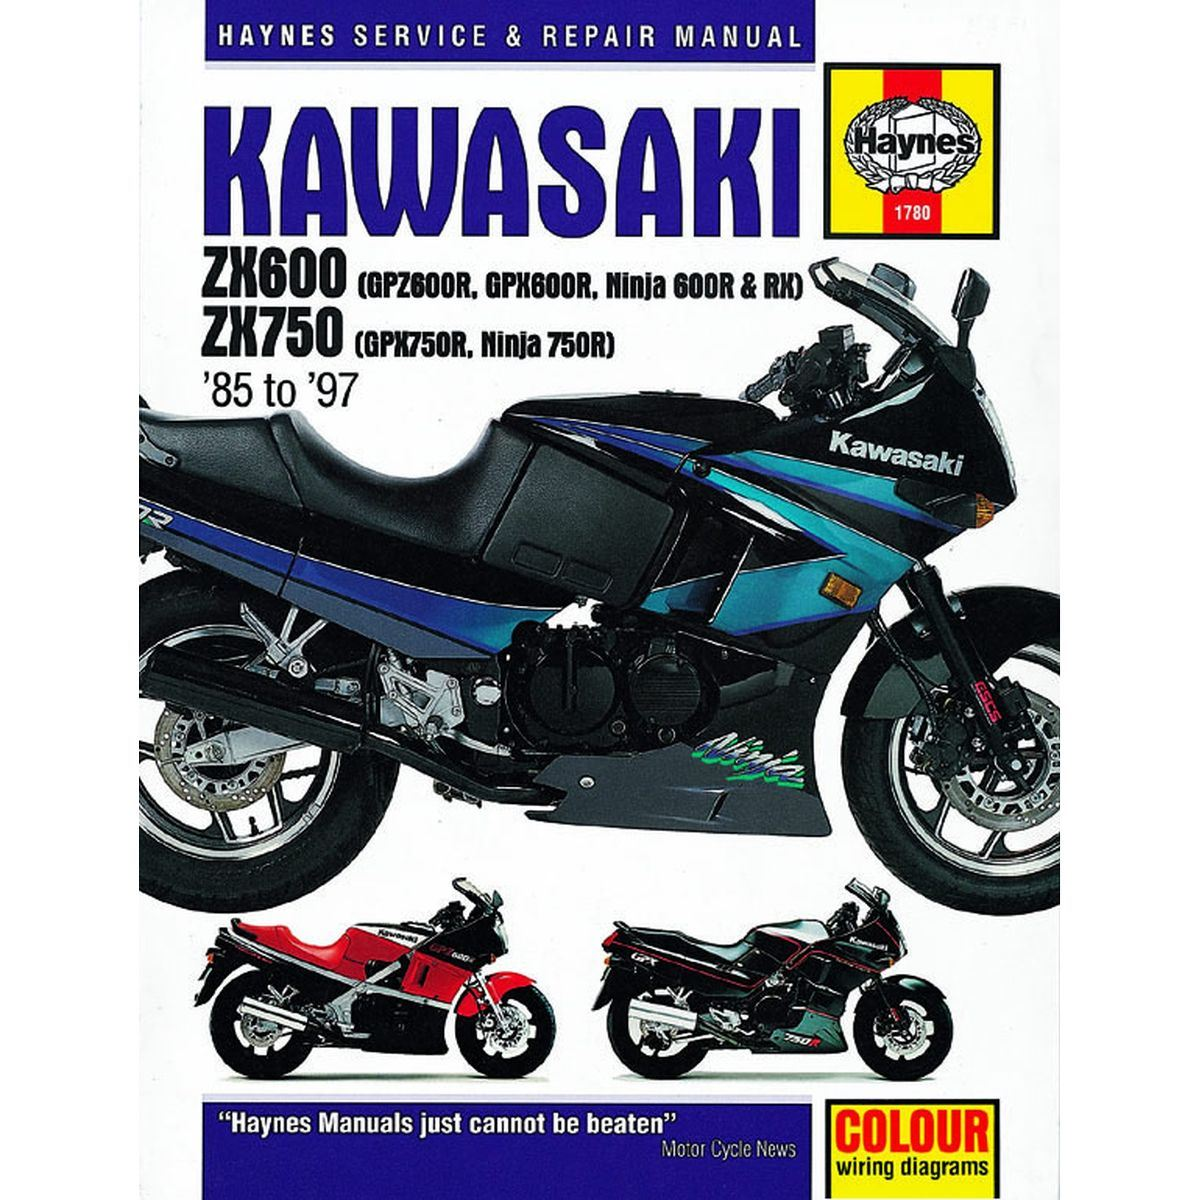 Manual Haynes For 1988 Kawasaki Gpx 750 R Zx750f2a Ebay Motorcycle Wiring Diagram Image Is Loading